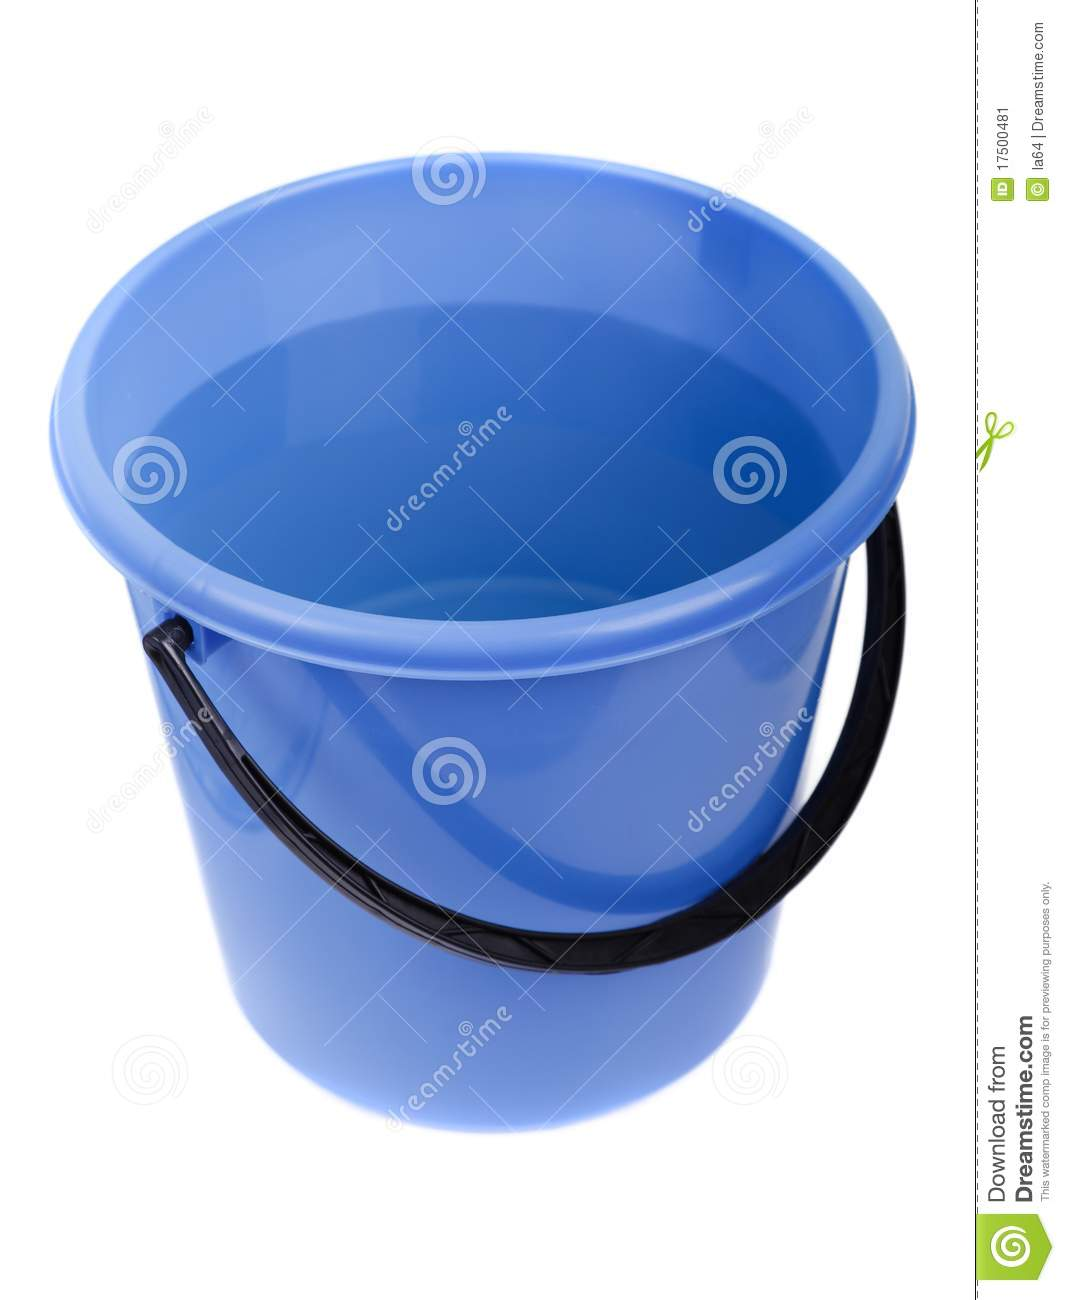 More similar stock images of ` Water full plastic bucket `